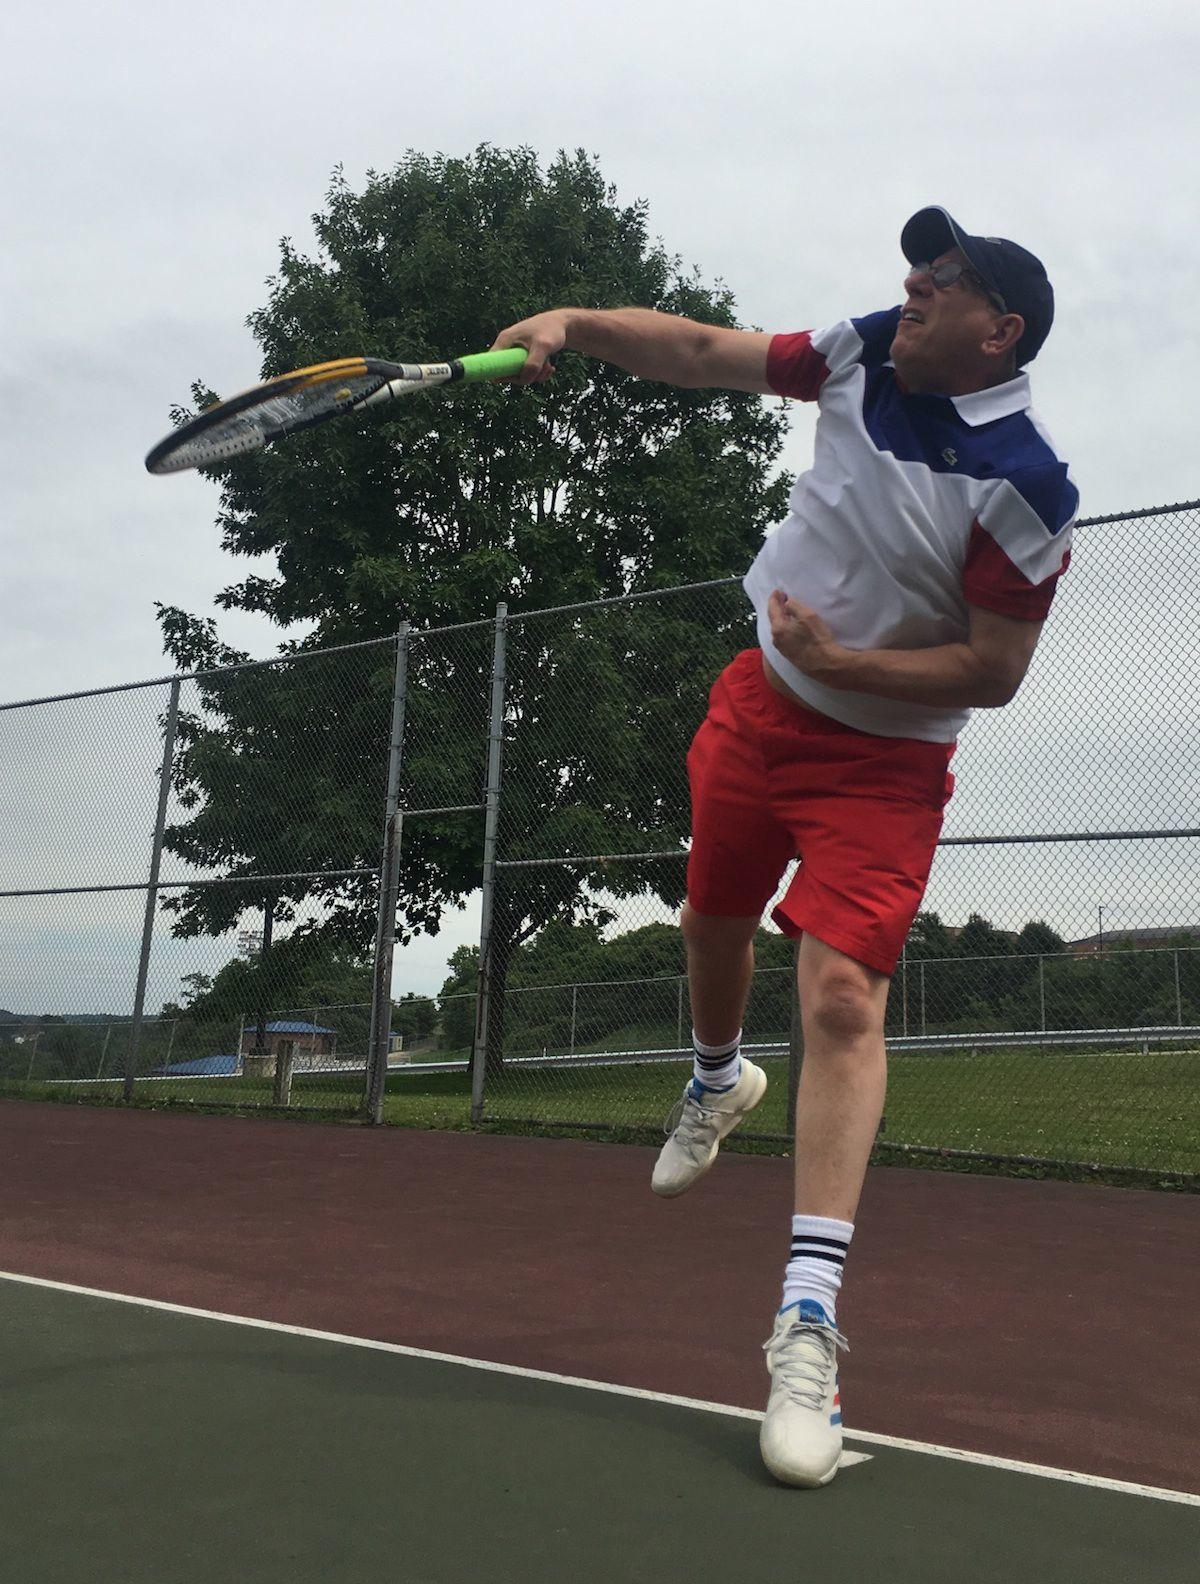 Toops practices a serve